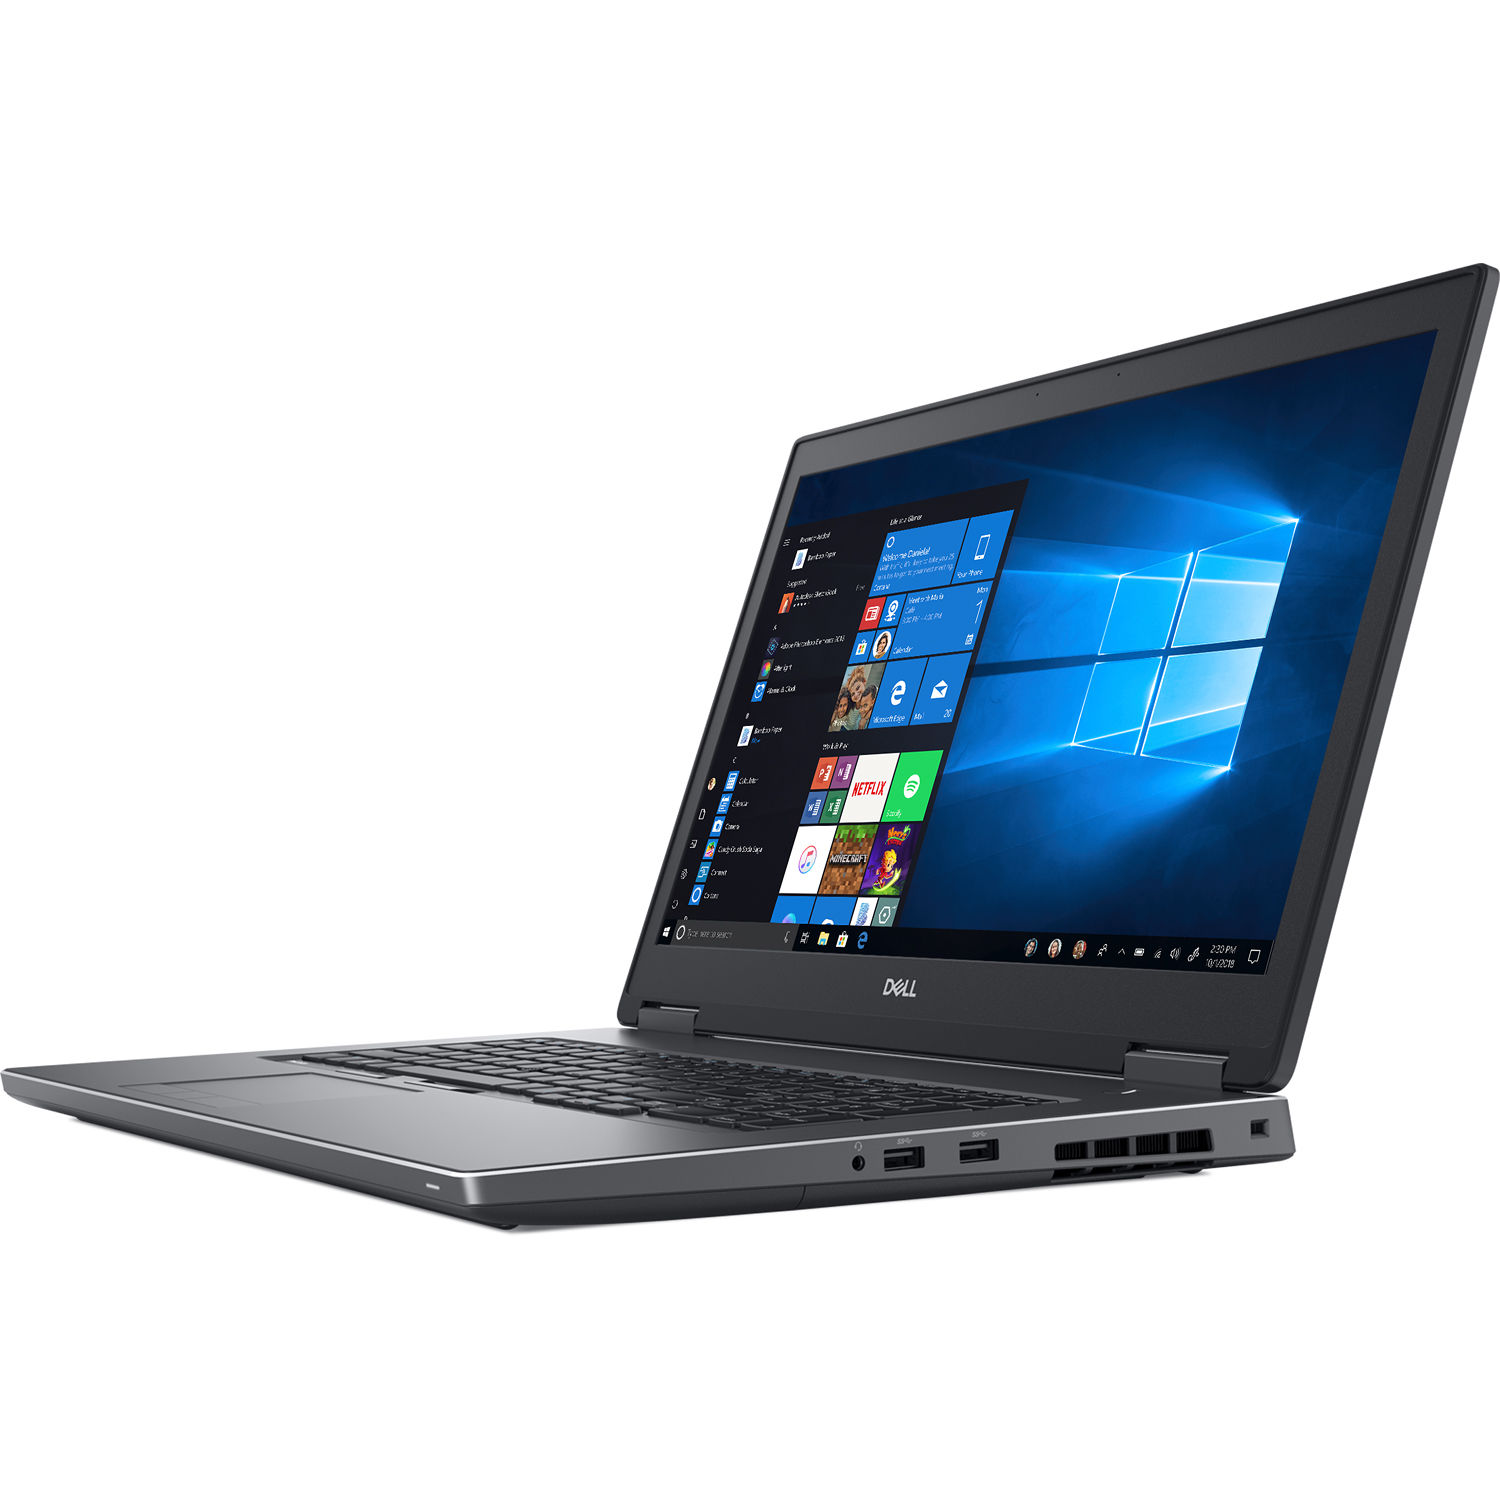 [Pre-Order]Laptop Workstation Cũ Dell Precision 7730 - Intel Core i7 - Quadro P4200